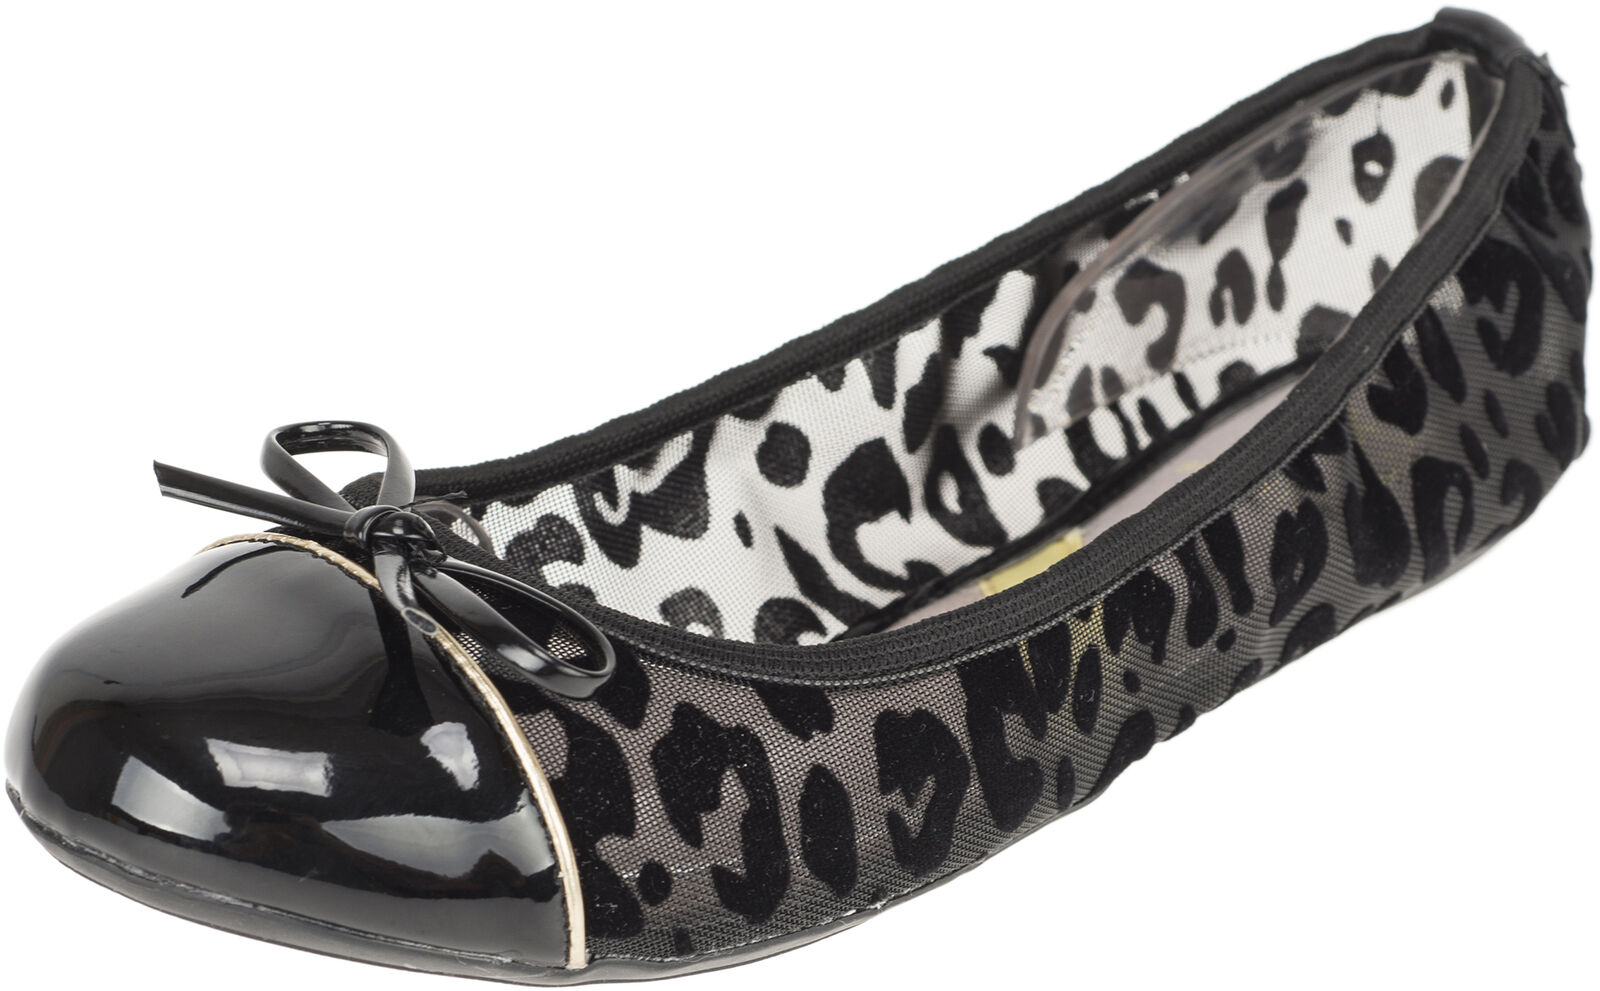 Butterfly Twists OLIVIA Retro FLOCK LEOPARD Ballet Flats BALLERINAS Rockabilly